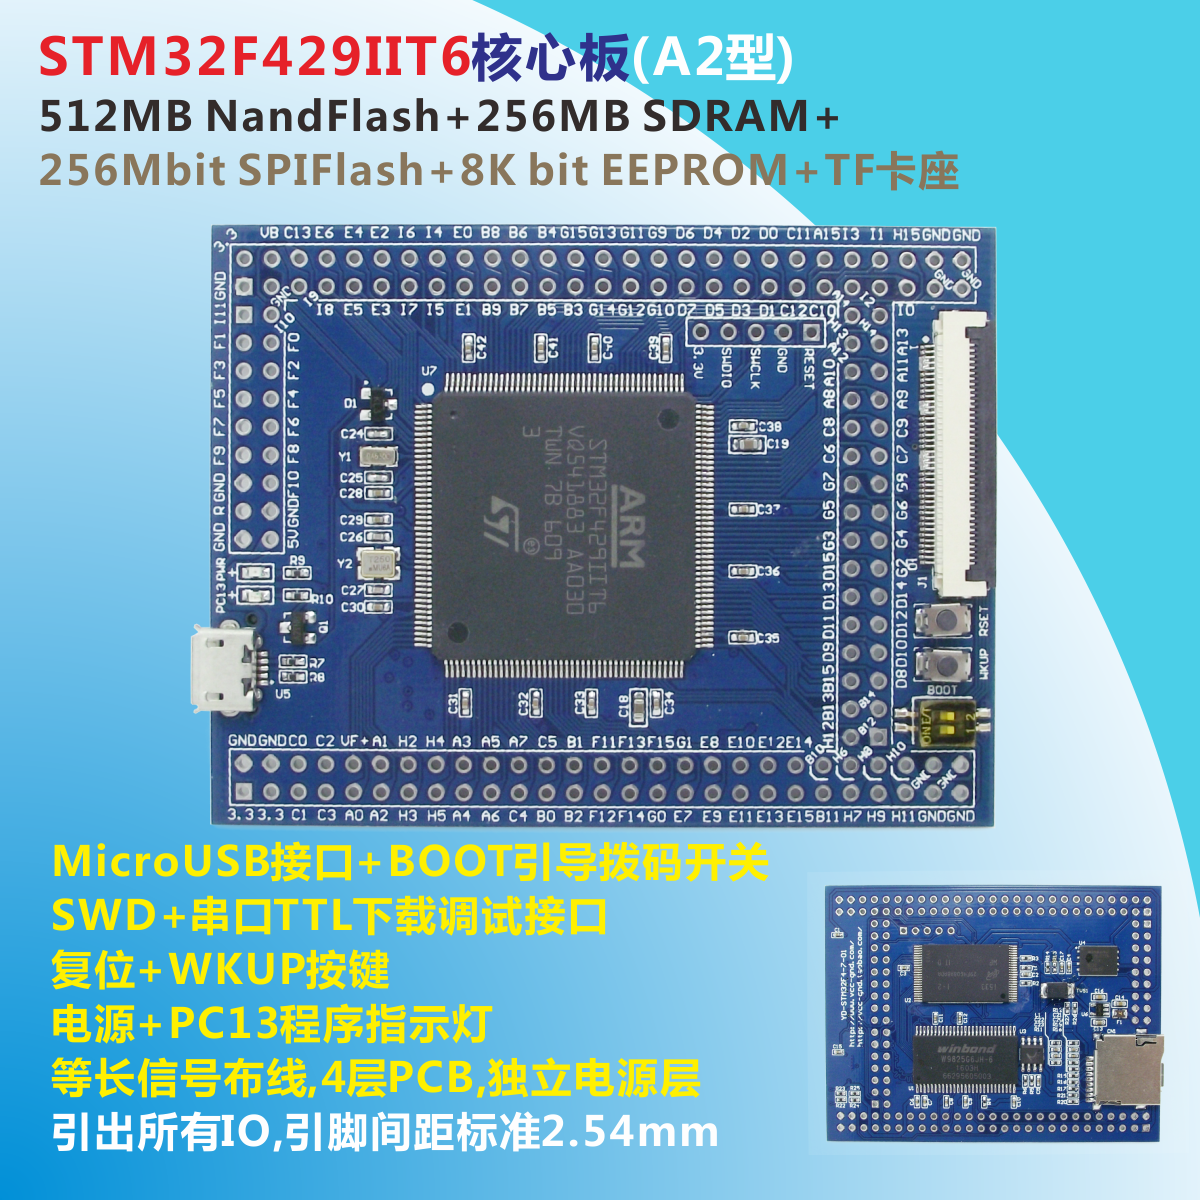 STM32F429IIT6 Core Board (larger than STM32F429IGT6, Built-in Flash) (A2) винтовка пневм gamo shadow igt